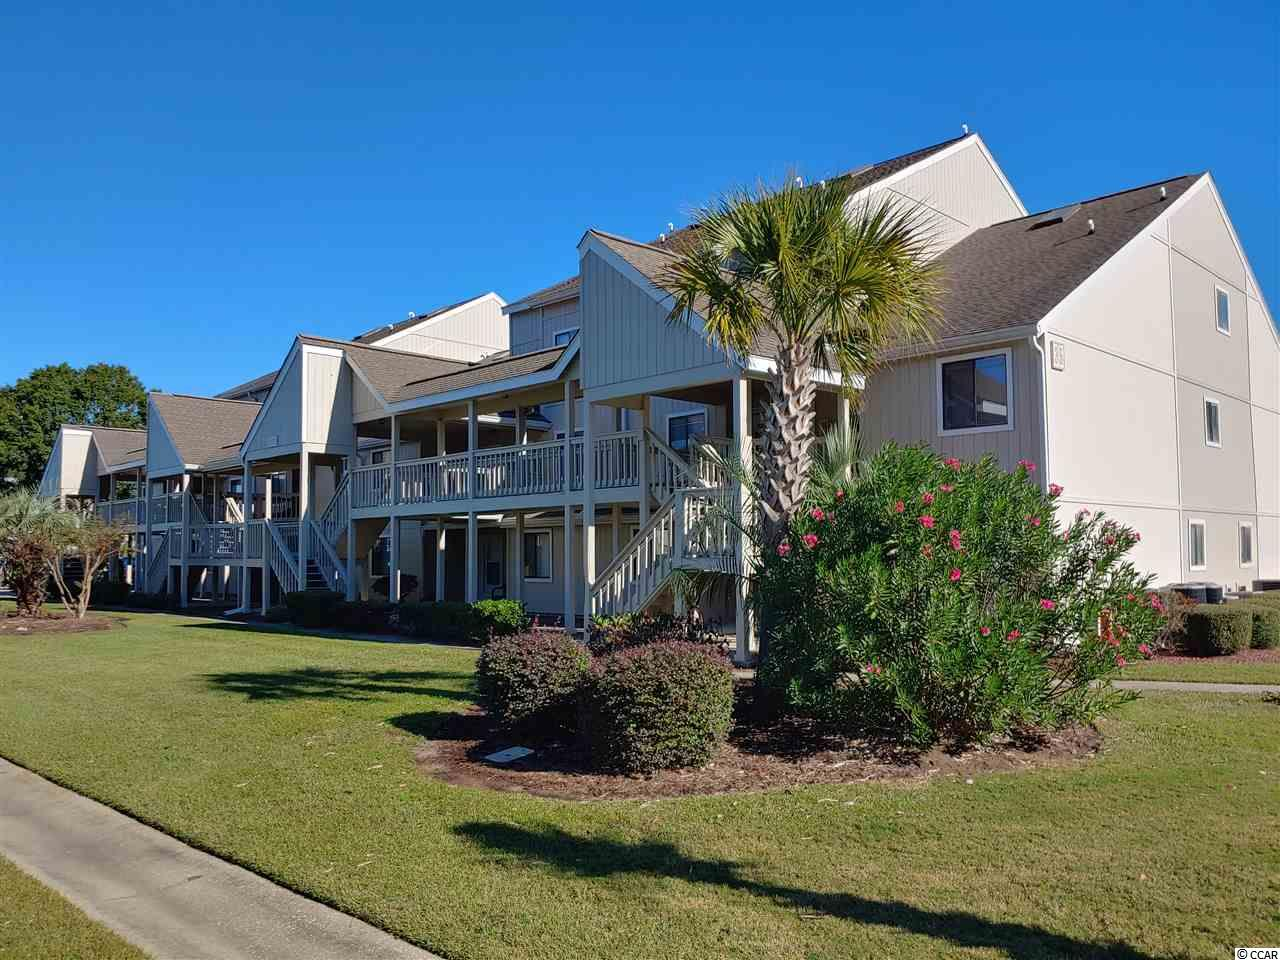 This is a Spacious 1 bedroom, 1.5 bath, Fully Furnished, 2nd-Floor condo in sought after Surfside Beach community of Golf Colony Resort! The condo's large bedroom has 2 queen sized beds and a spacious 18'x17' Living Room. The open floor plan has a great breakfast bar, which is perfect for entertaining! The covered deck overlooks the saltwater pool and the picnic/grilling area. There are also two very nice tennis courts for fun with family and friends! Golf Colony @ Deerfield is a great location that allows you to enjoy the convenience of going right across 17 in Surfside to get to the beach and also has a back entrance on 17 Bypass to do quick shopping! It is only 15 minutes from Myrtle Beach International Airport and The Famous Murrells Inlet MarshWalk, where you'll enjoy everything from fresh caught seafood to some of the best live bands! This gem is move-in ready!